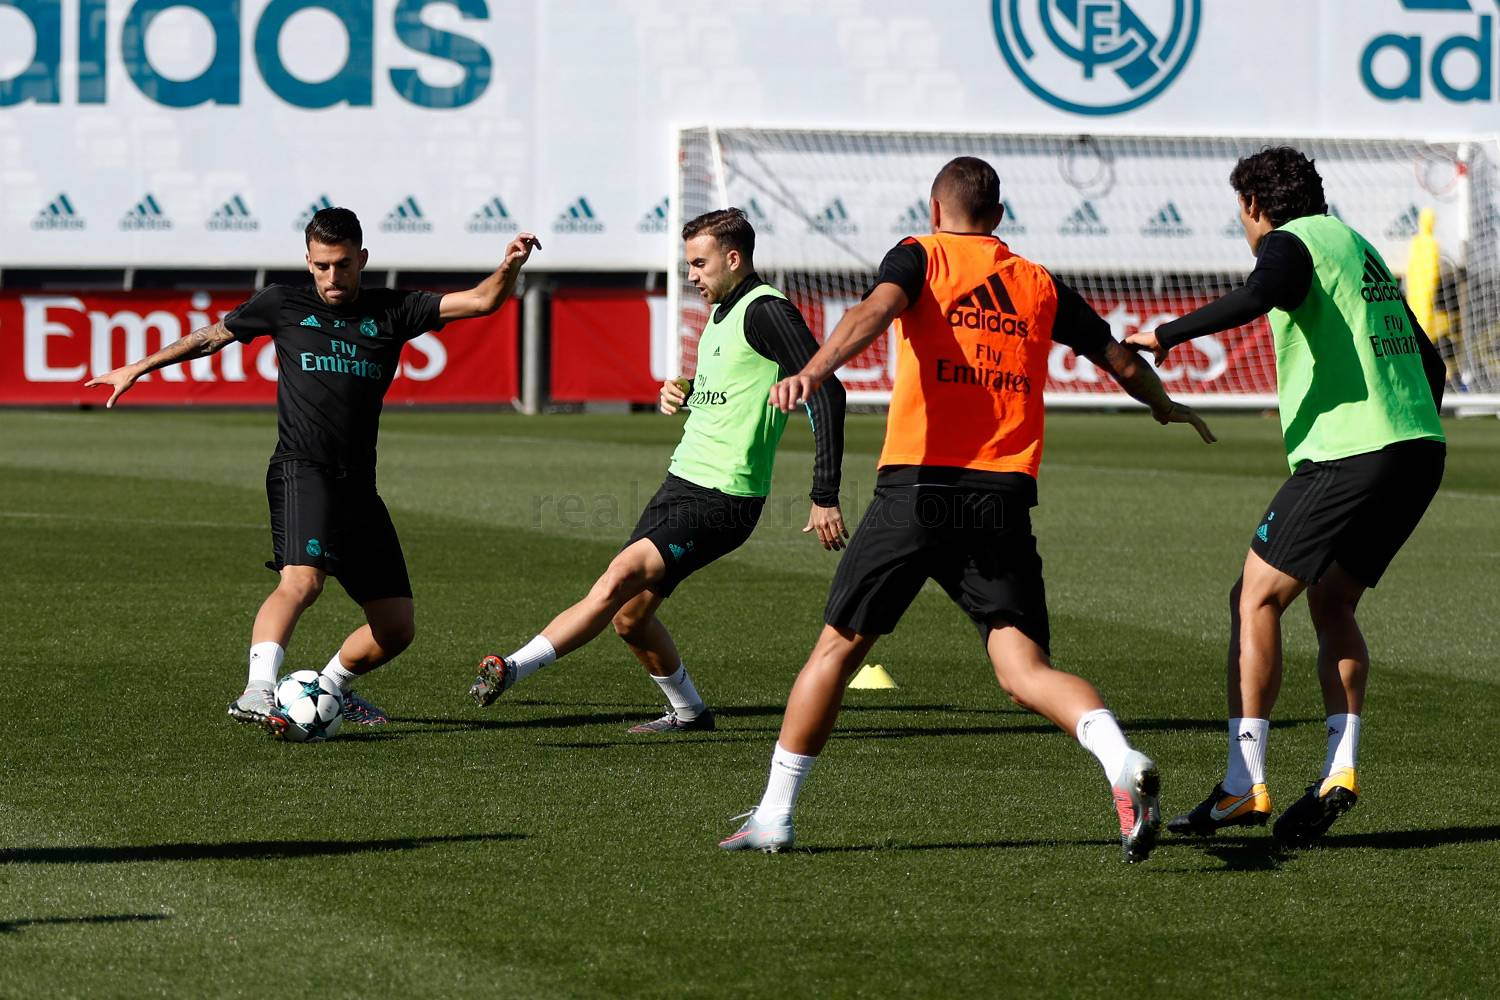 Real Madrid - Entrenamiento del Real Madrid - 30-10-2017